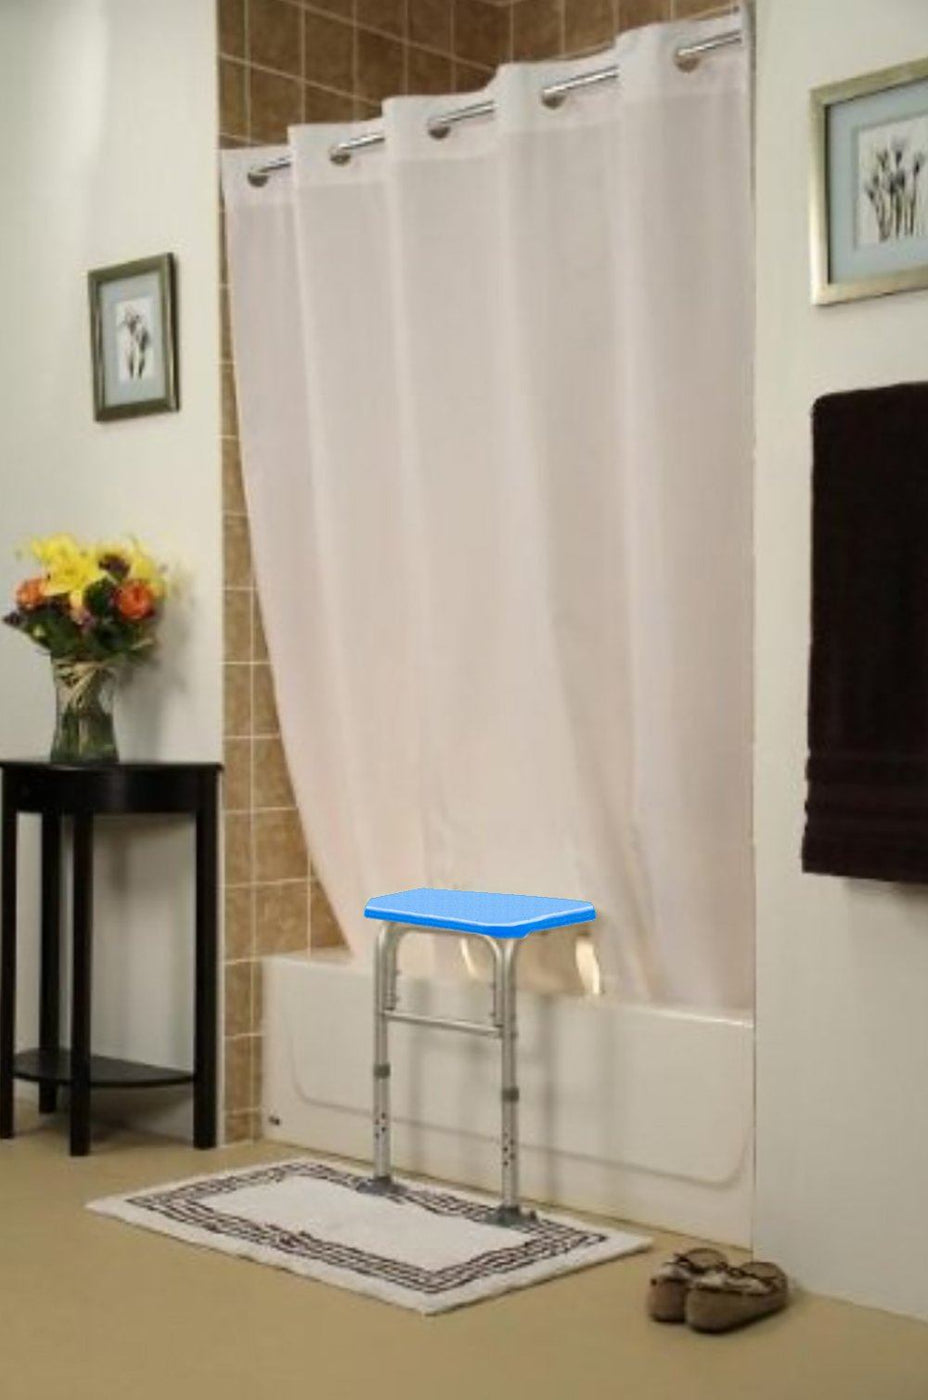 BenchMate Split Shower Curtain for Bath Transfer Benches - Beautiful Designer Fabric, Premium Hookless Quick-Attach System, Designed Specifically to Help Keep Water off the Floor